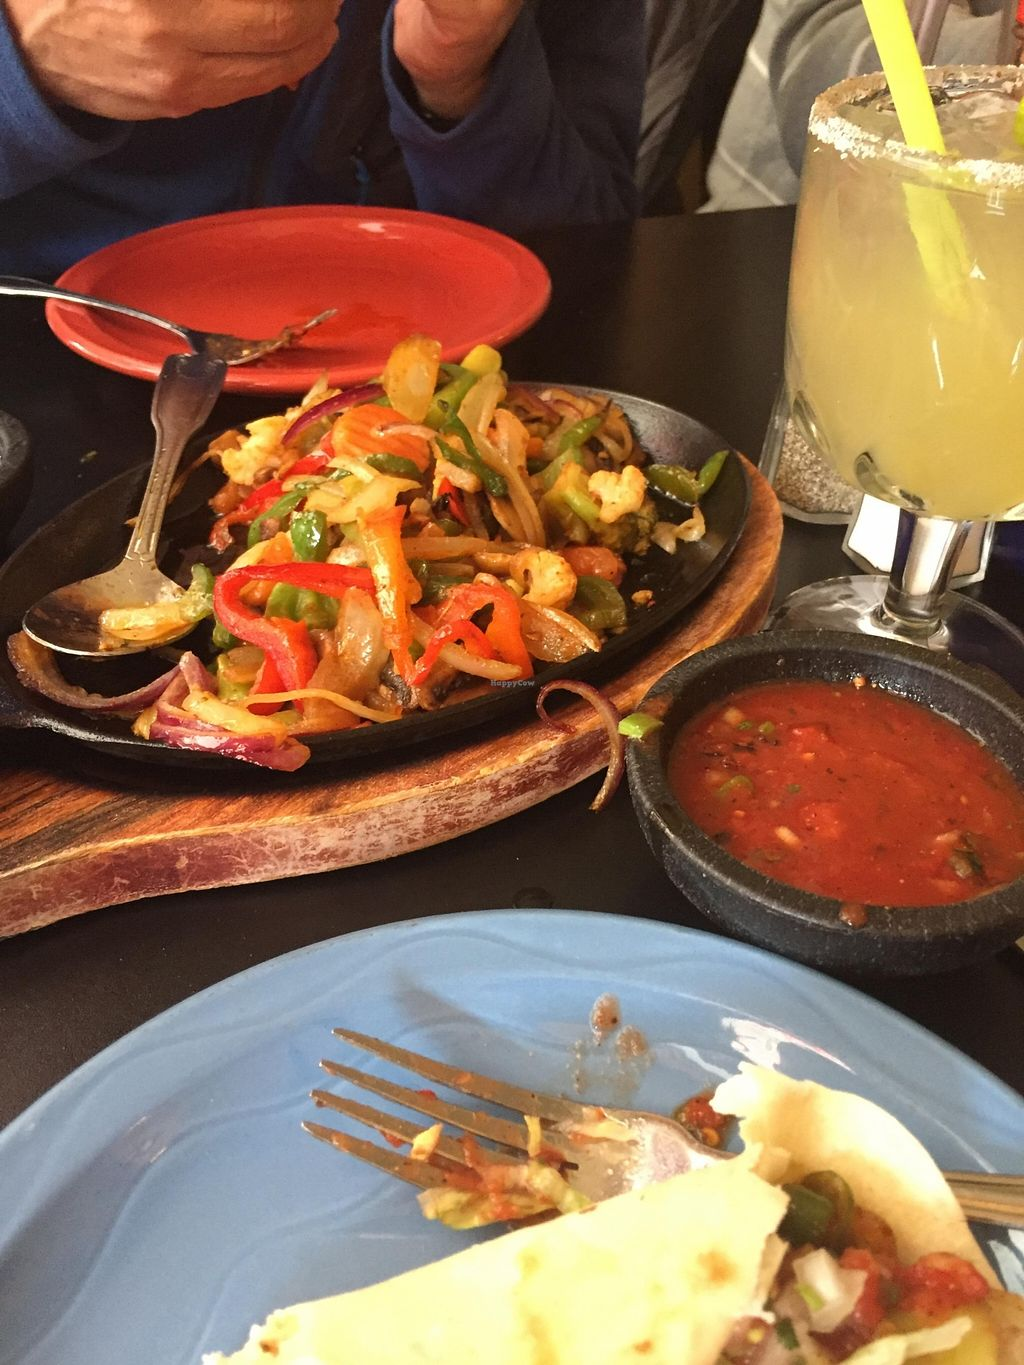 """Photo of Casa Mexico  by <a href=""""/members/profile/cwarrick1"""">cwarrick1</a> <br/>Veggie fajitas  <br/> February 27, 2016  - <a href='/contact/abuse/image/70197/137966'>Report</a>"""